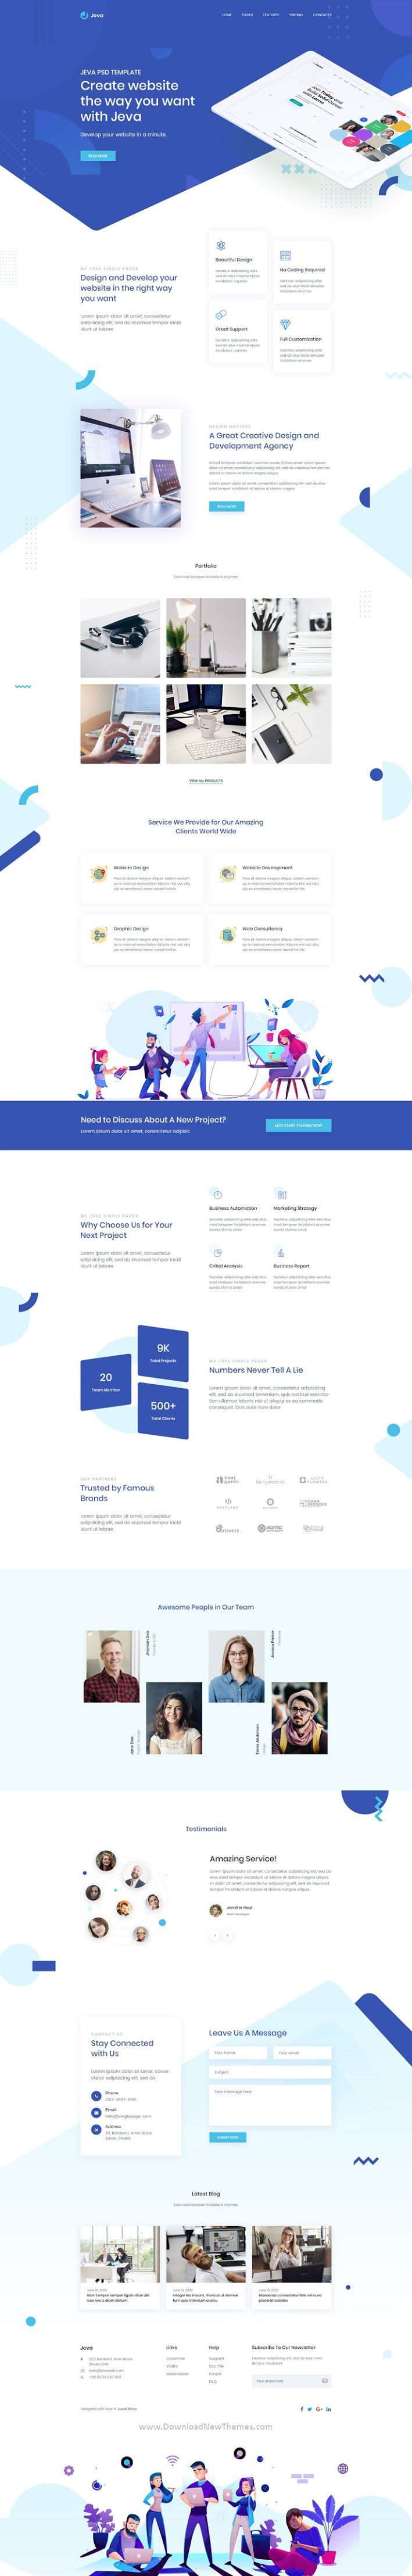 Creative Agency & Startup Landing Page